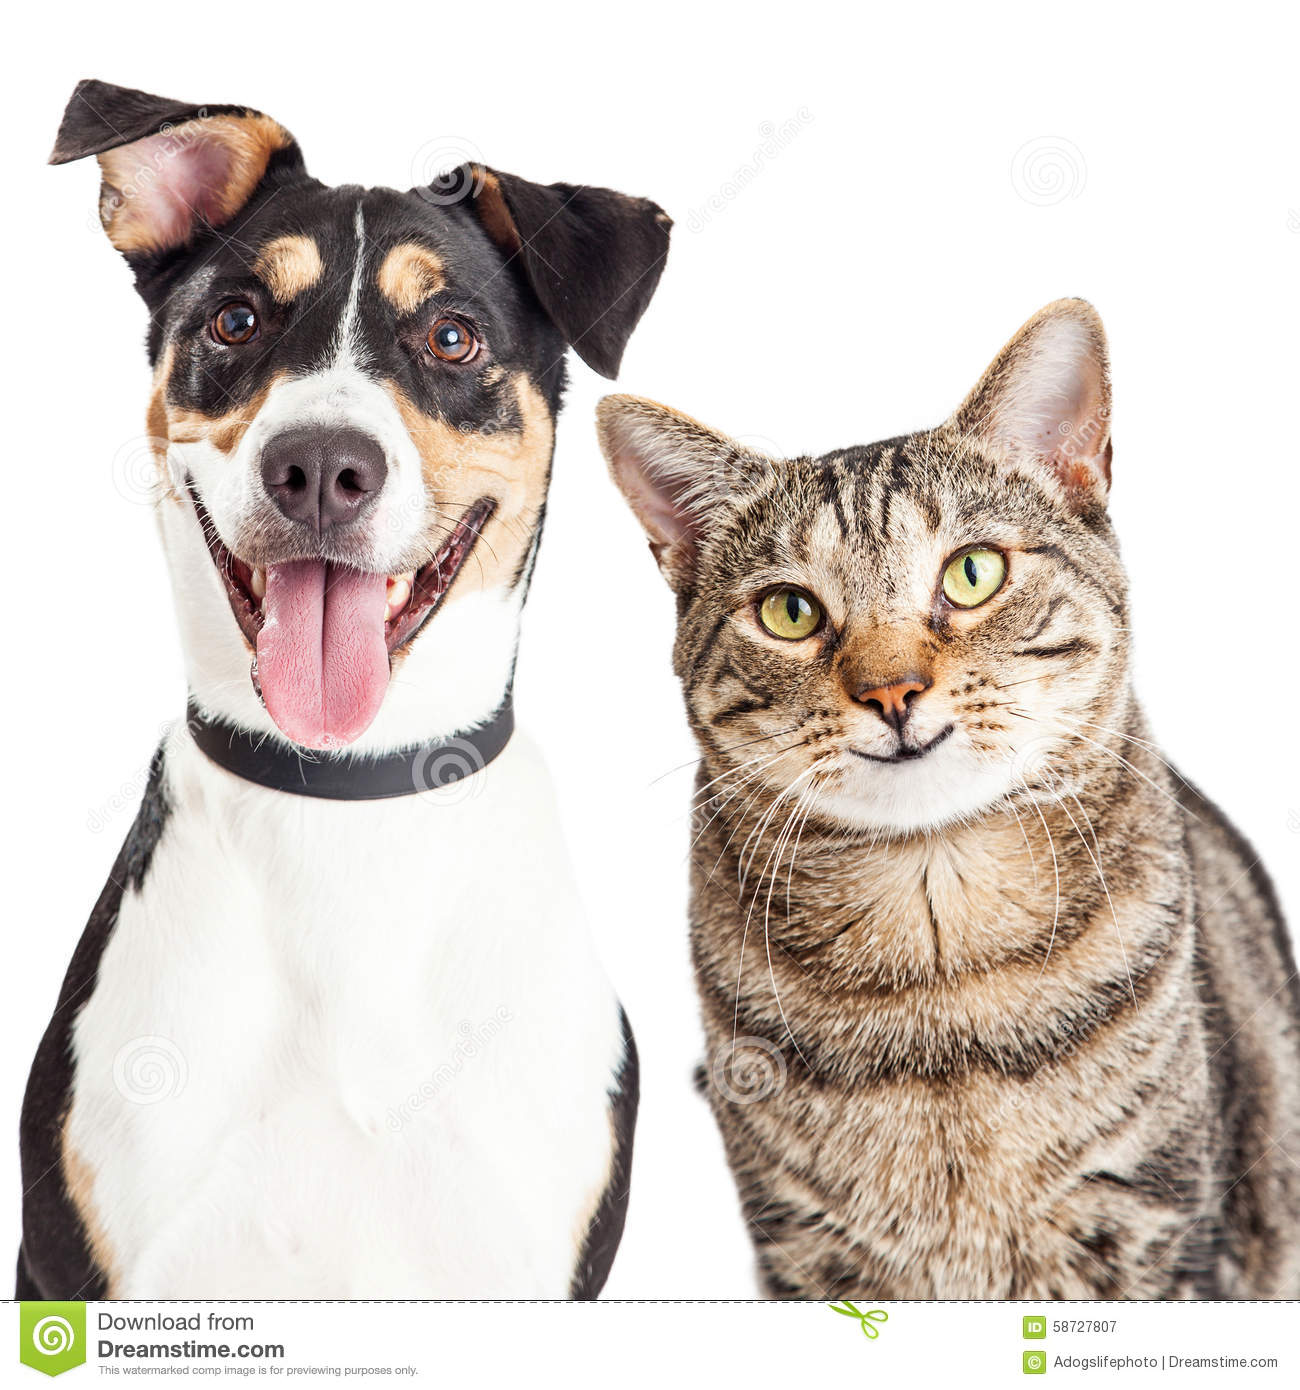 Happy Dog And Cat Together Closeup Stock Photo - Image: 58727807 Smiling Dog And Cat